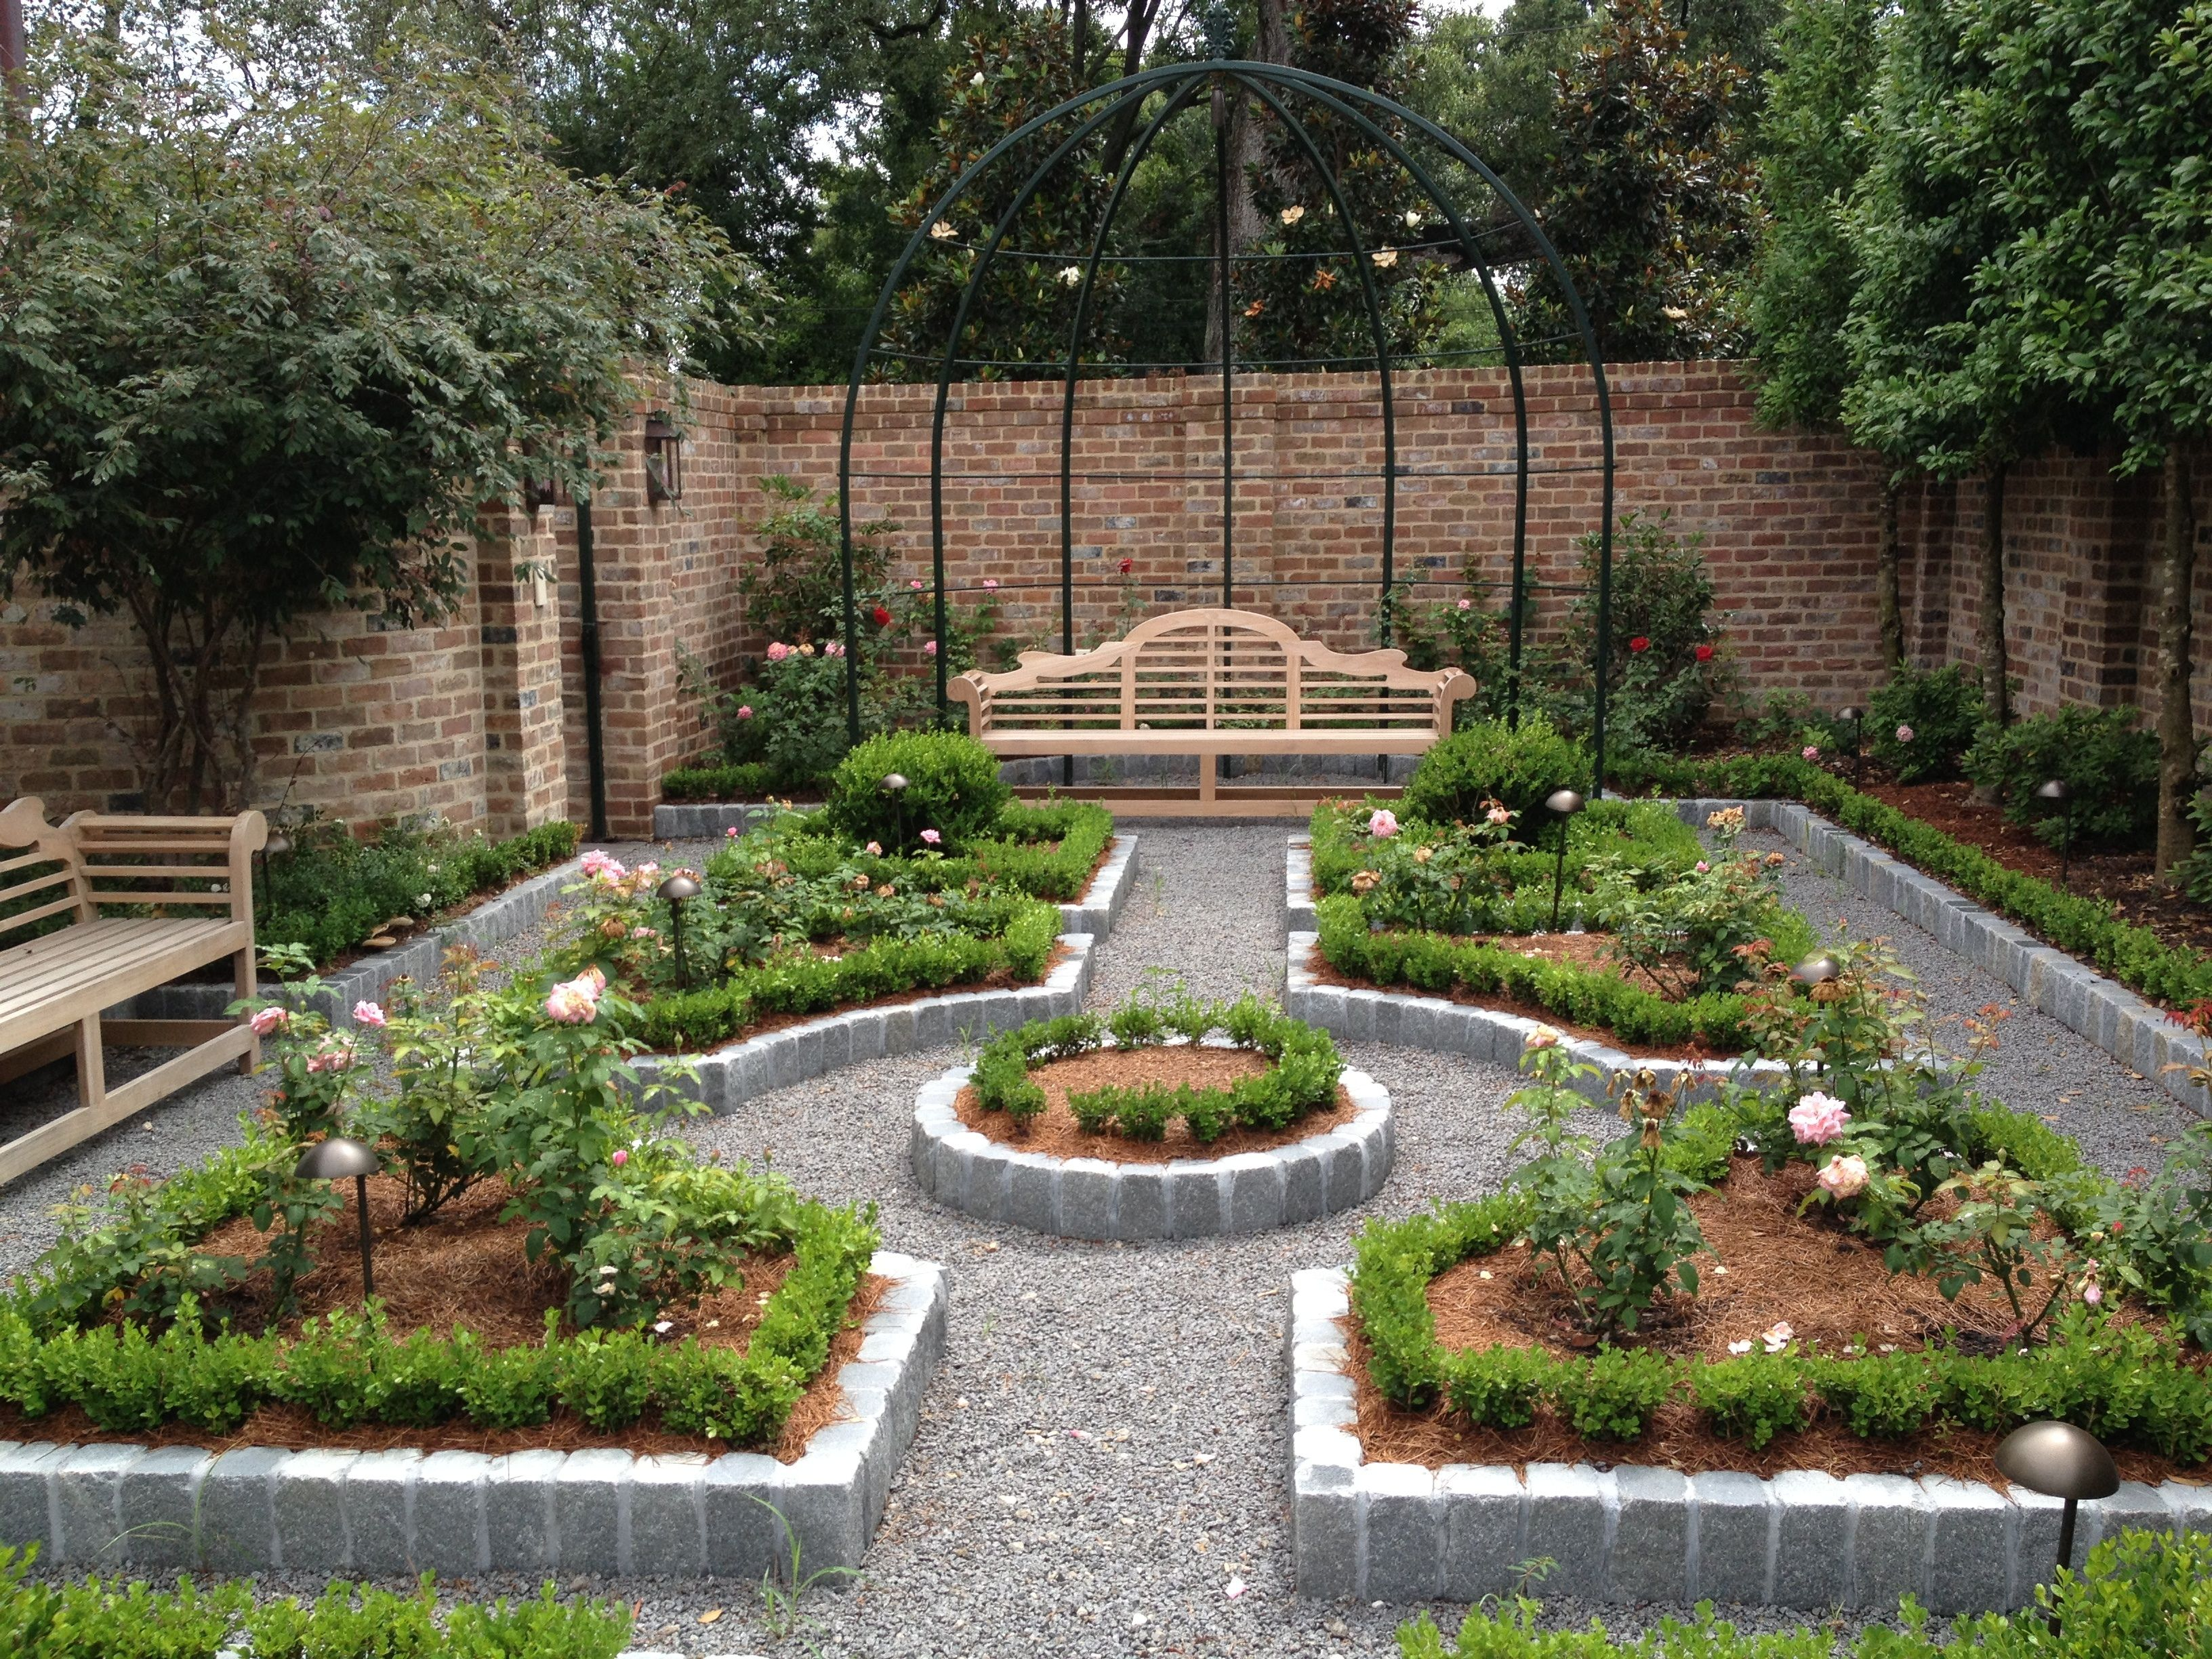 This contemplative rose garden plan uses David Austin floribunda